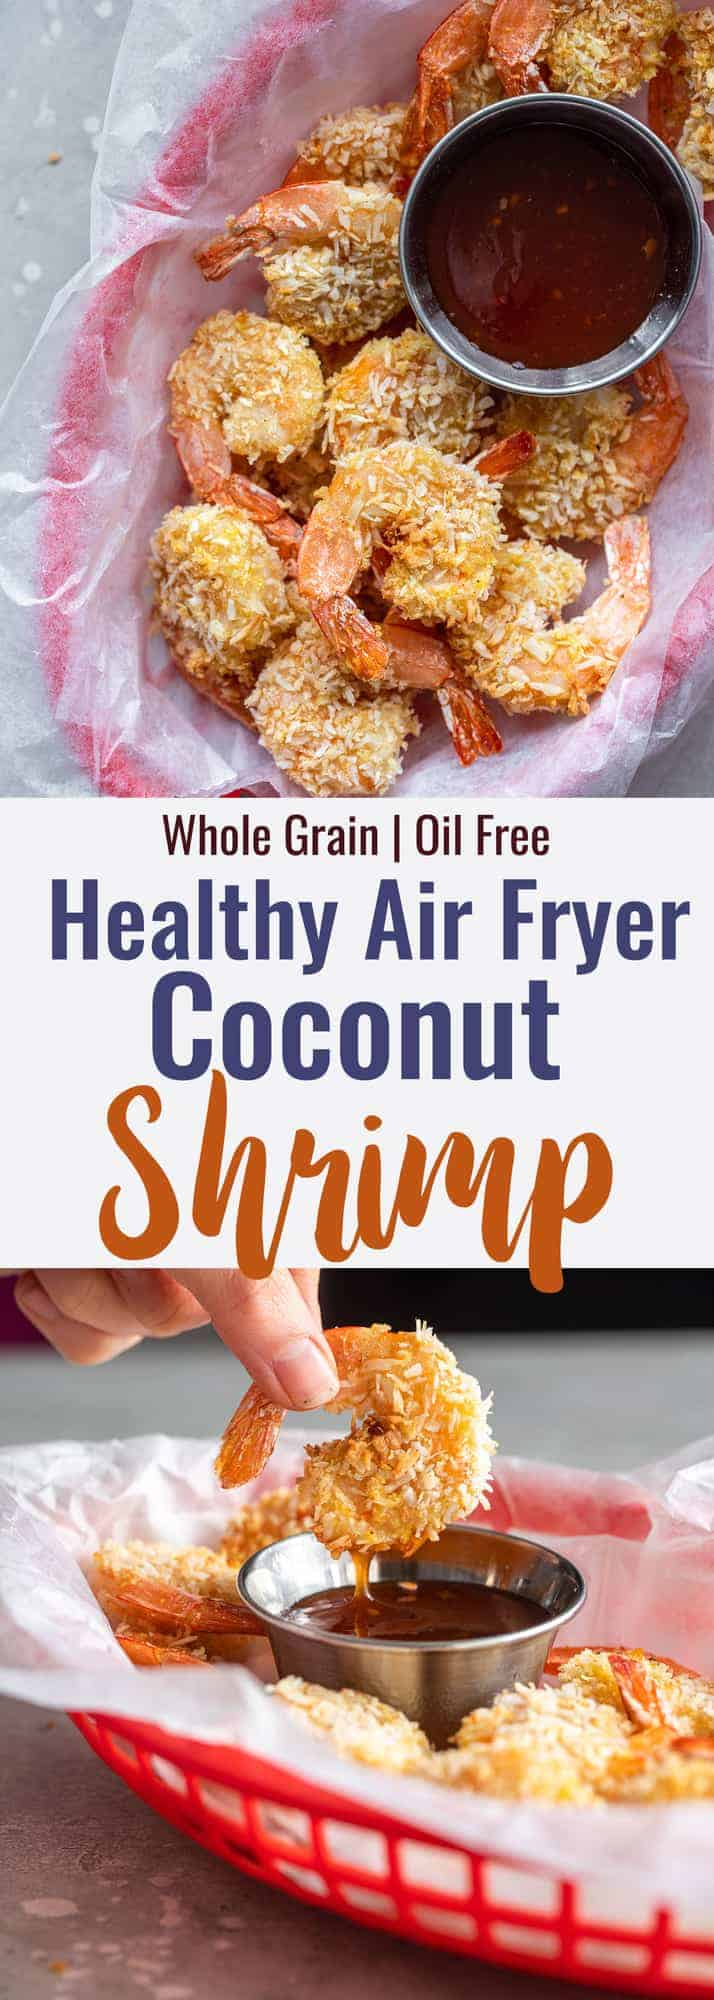 Air Fryer Coconut Shrimp collage image